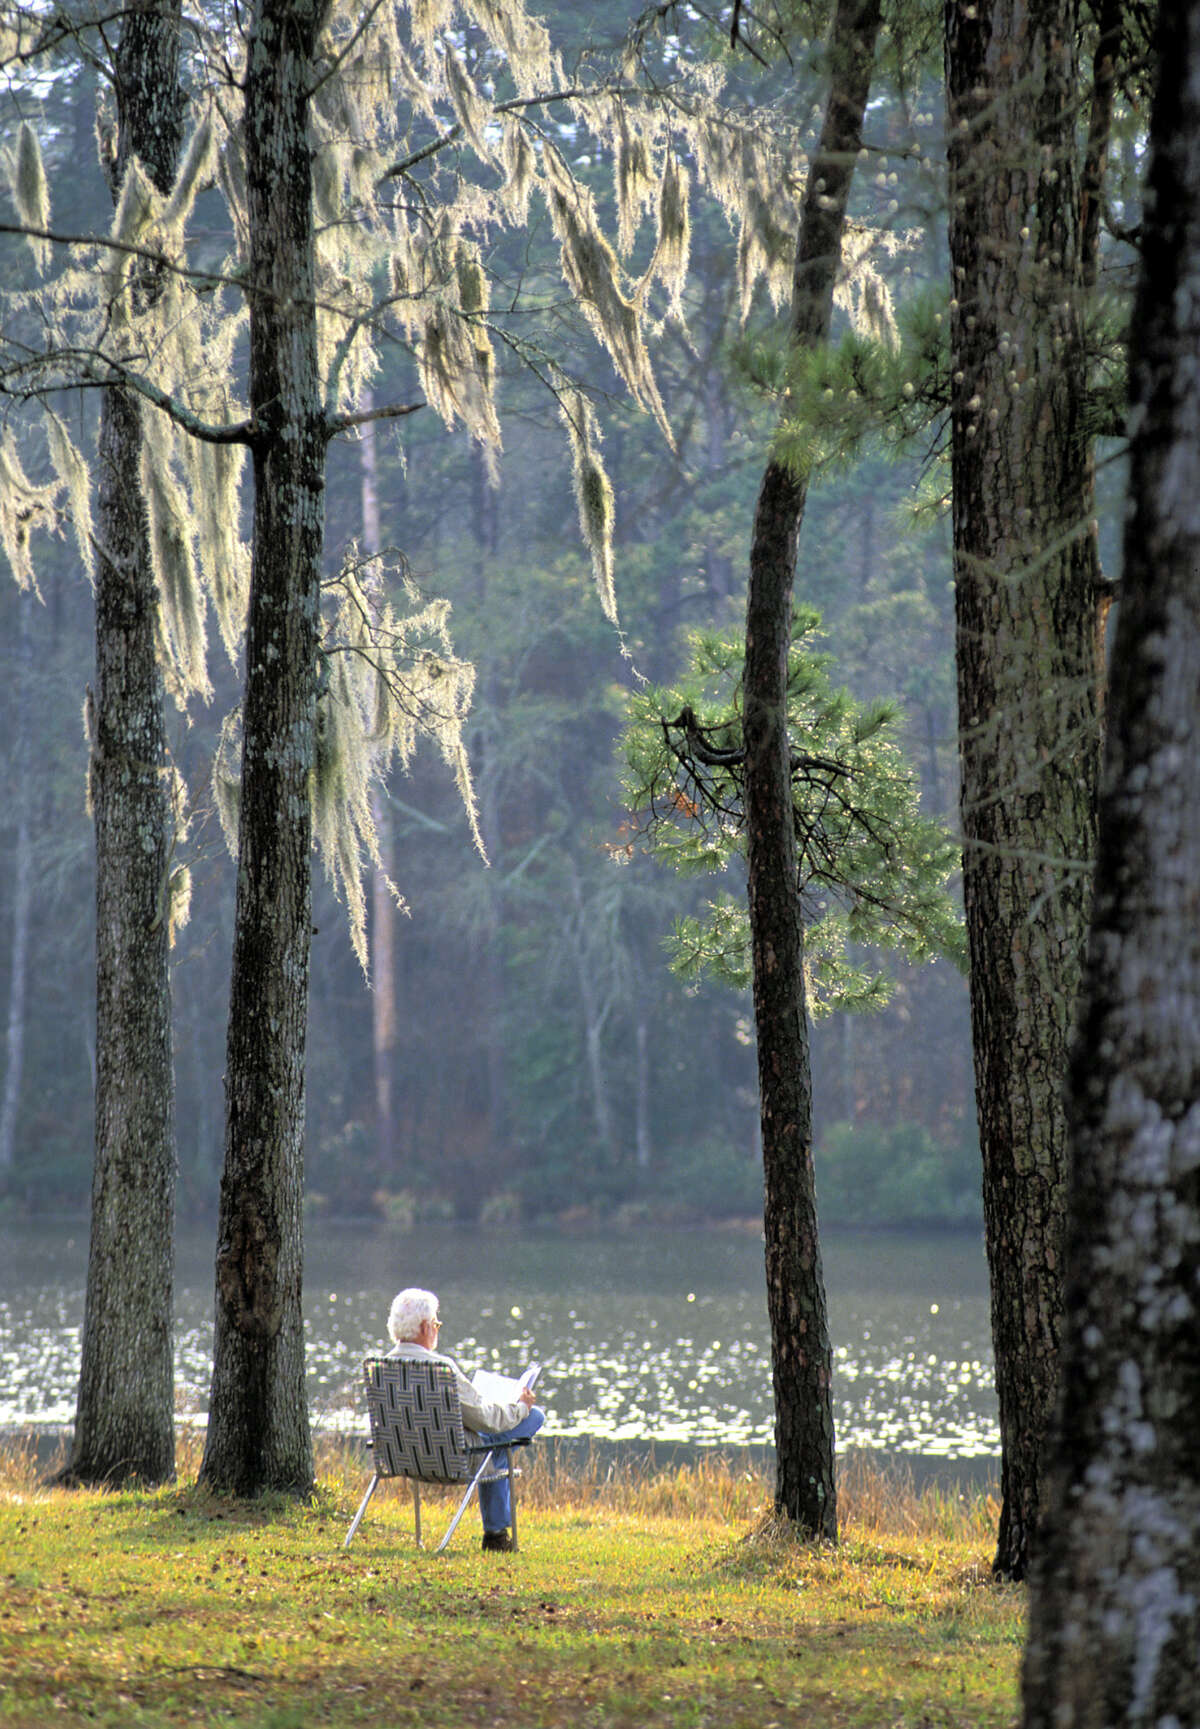 Relaxing under moss-draped trees around Lake Raven at Huntsville State Park, 50 miles north of Houston. The park draws about 400,000 visitors annually. Photo courtesy Texas Parks and Wildlife. date unknown.